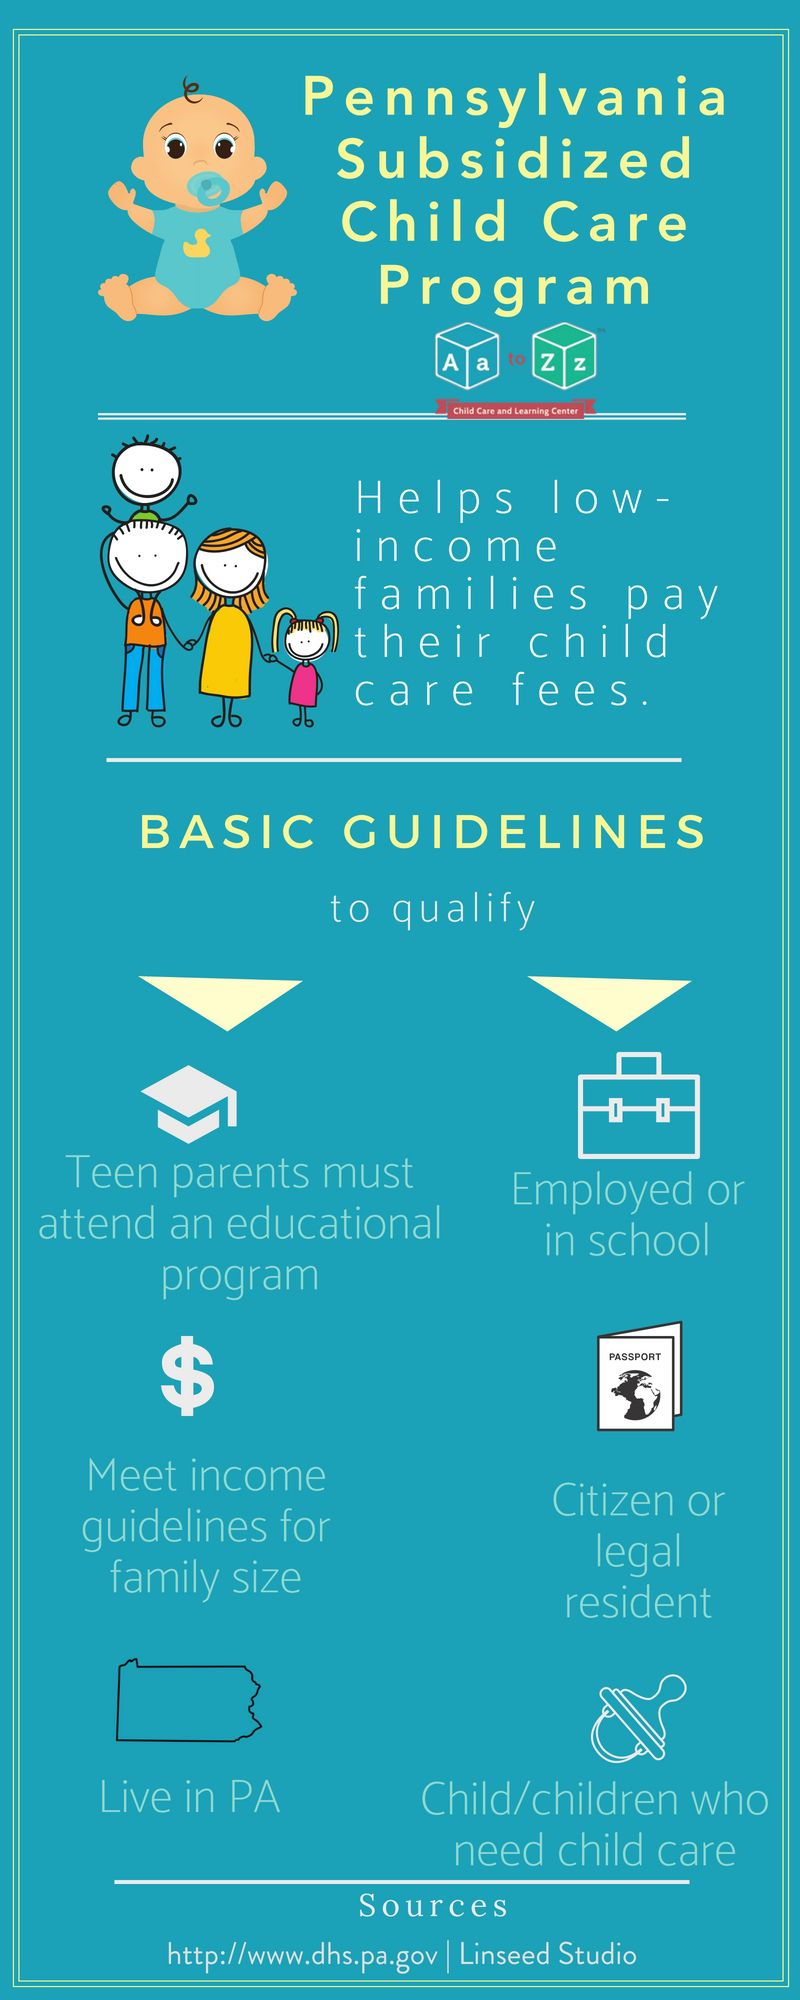 Central Pa Childcare Assistance Options For Low Income Families Balancing Work And Family Childcare Childcare Costs